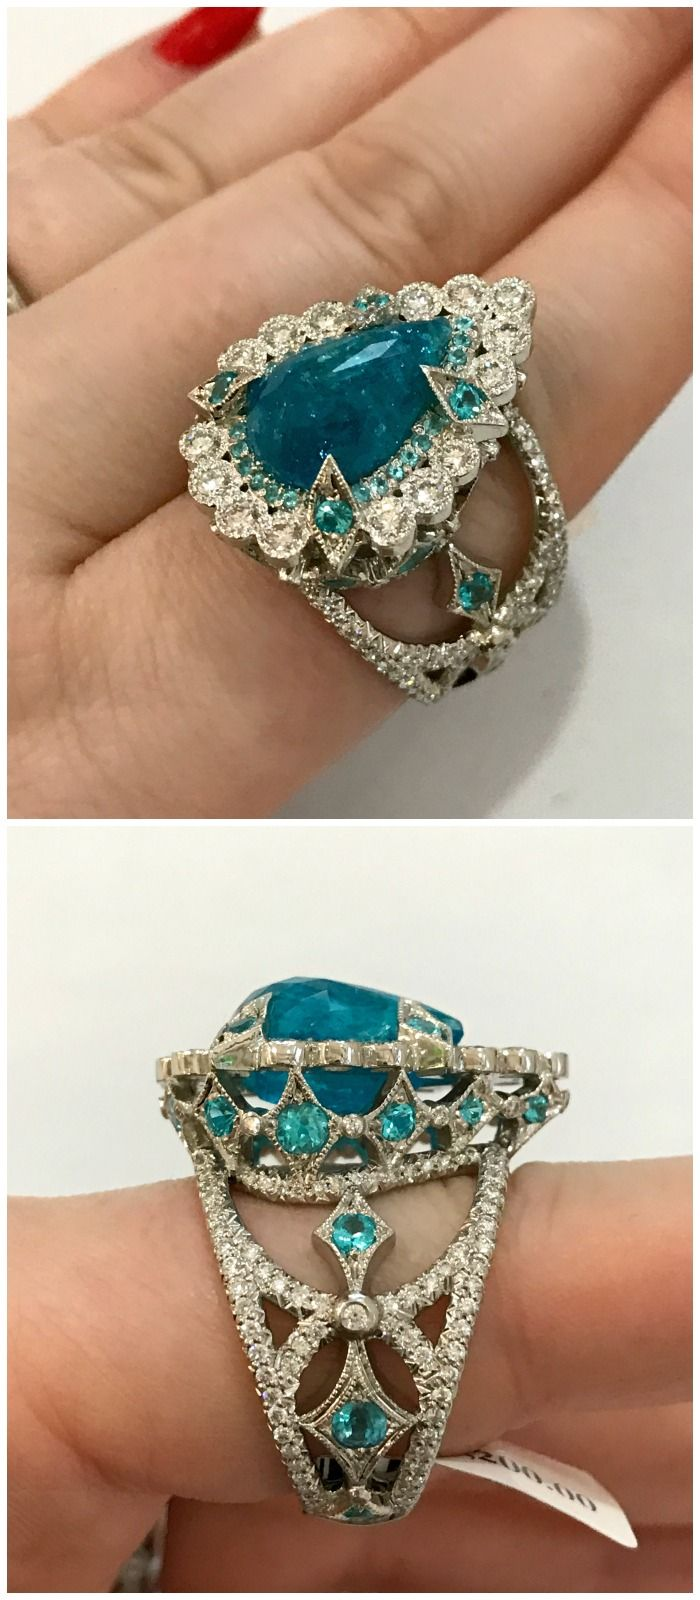 A wildly beautiful Paraiba tourmaline and diamond ring by Erica Courtney.